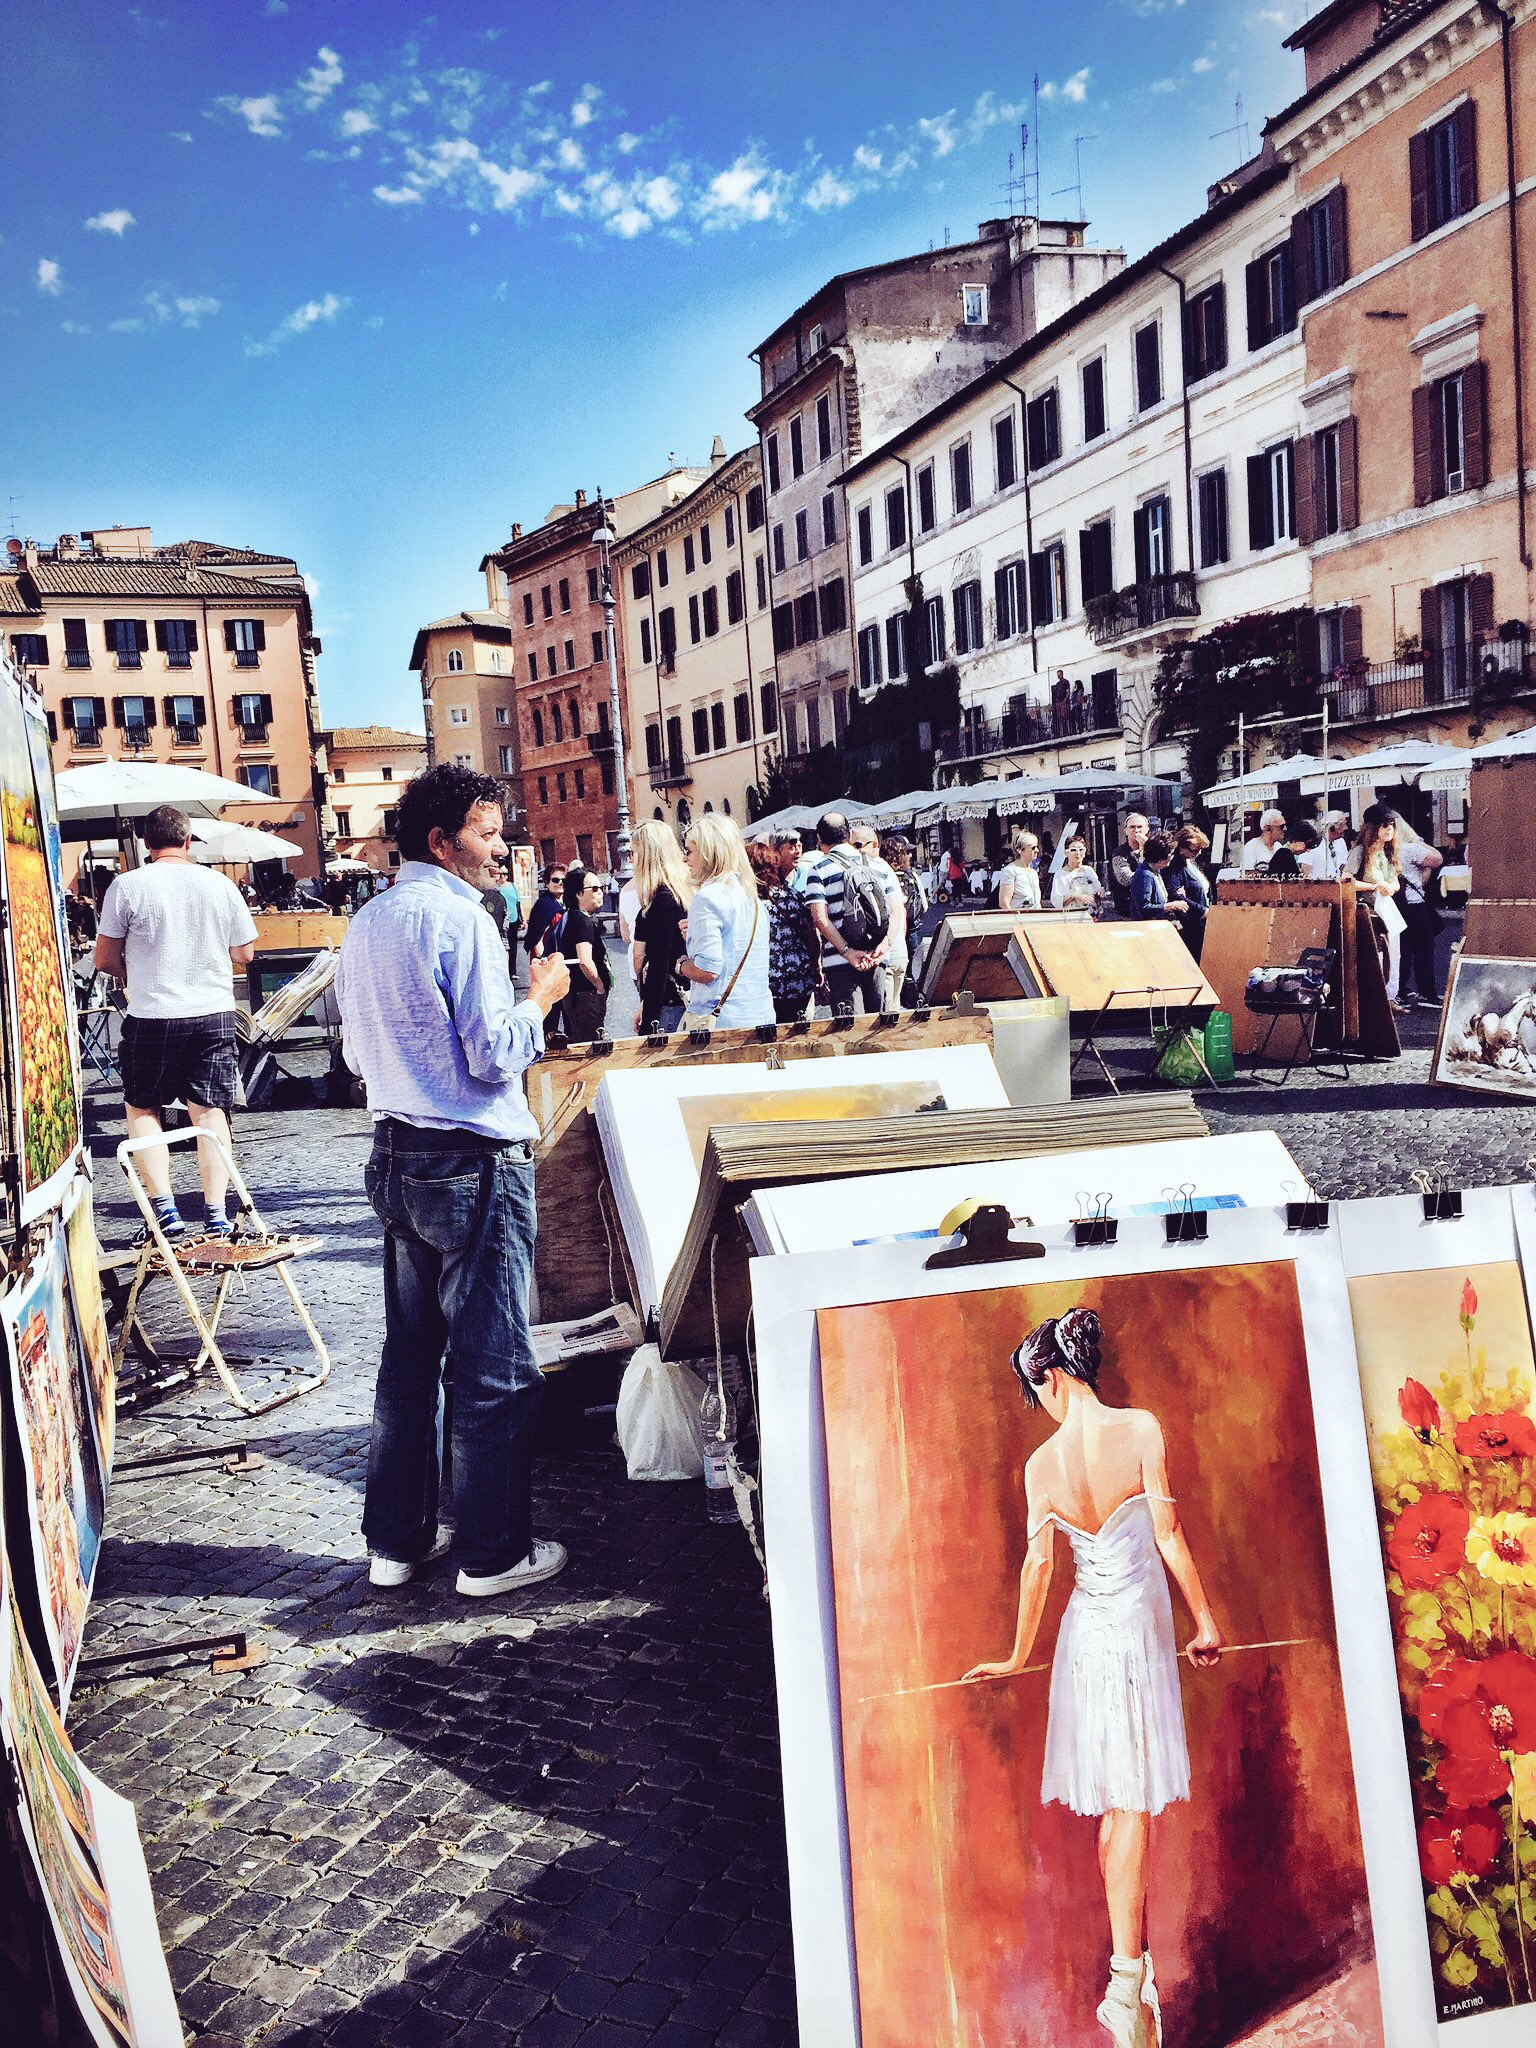 TOP 10 BEST FREE THINGS TO DO IN ROME  (PUBLISHED BY: LIKE A LOCAL)